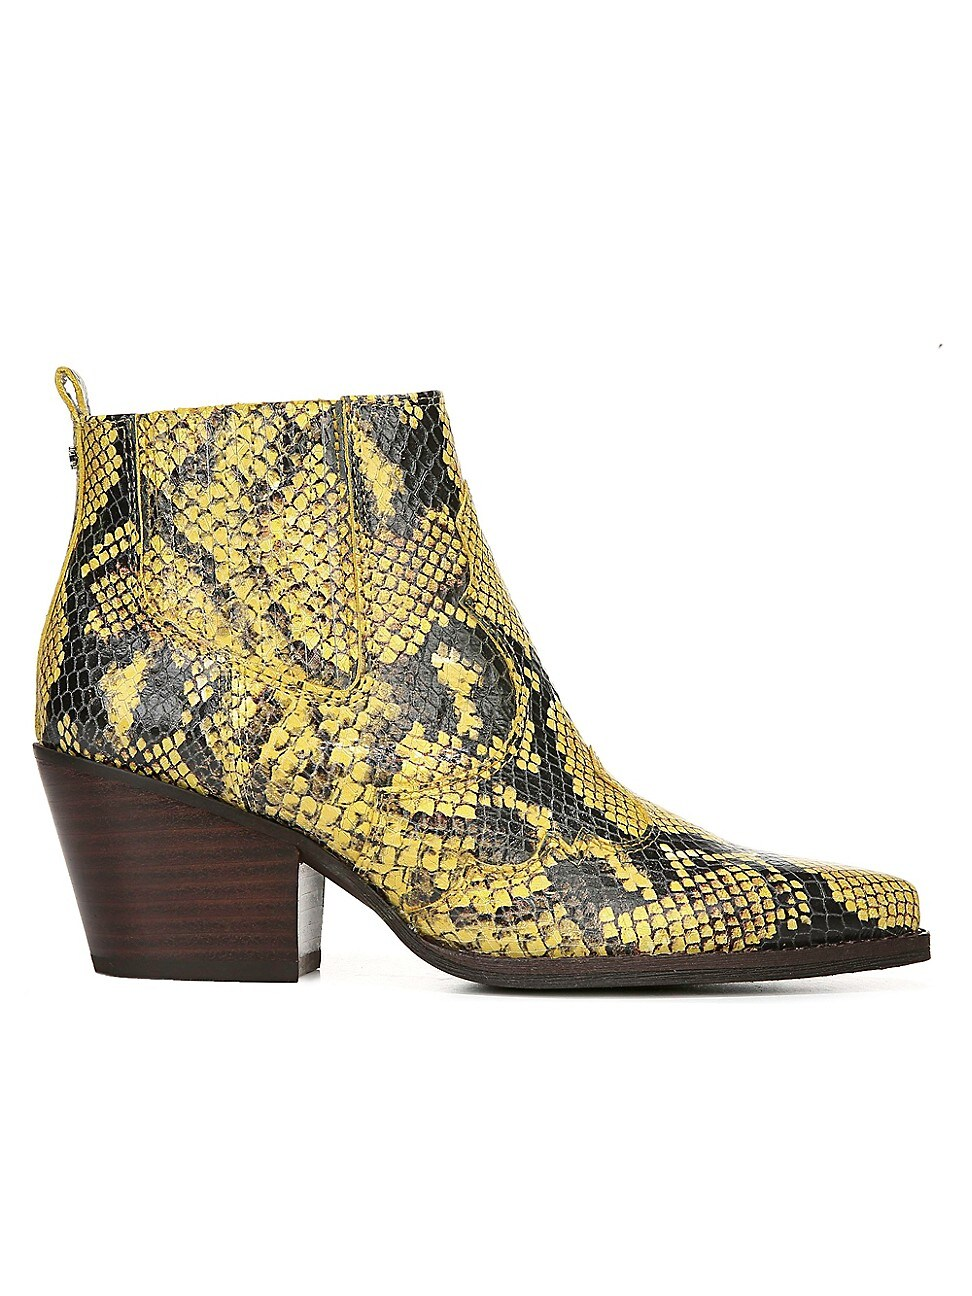 Sam Edelman Women's Winona Western Snakeskin-embossed Leather Ankle Boots In Yellow